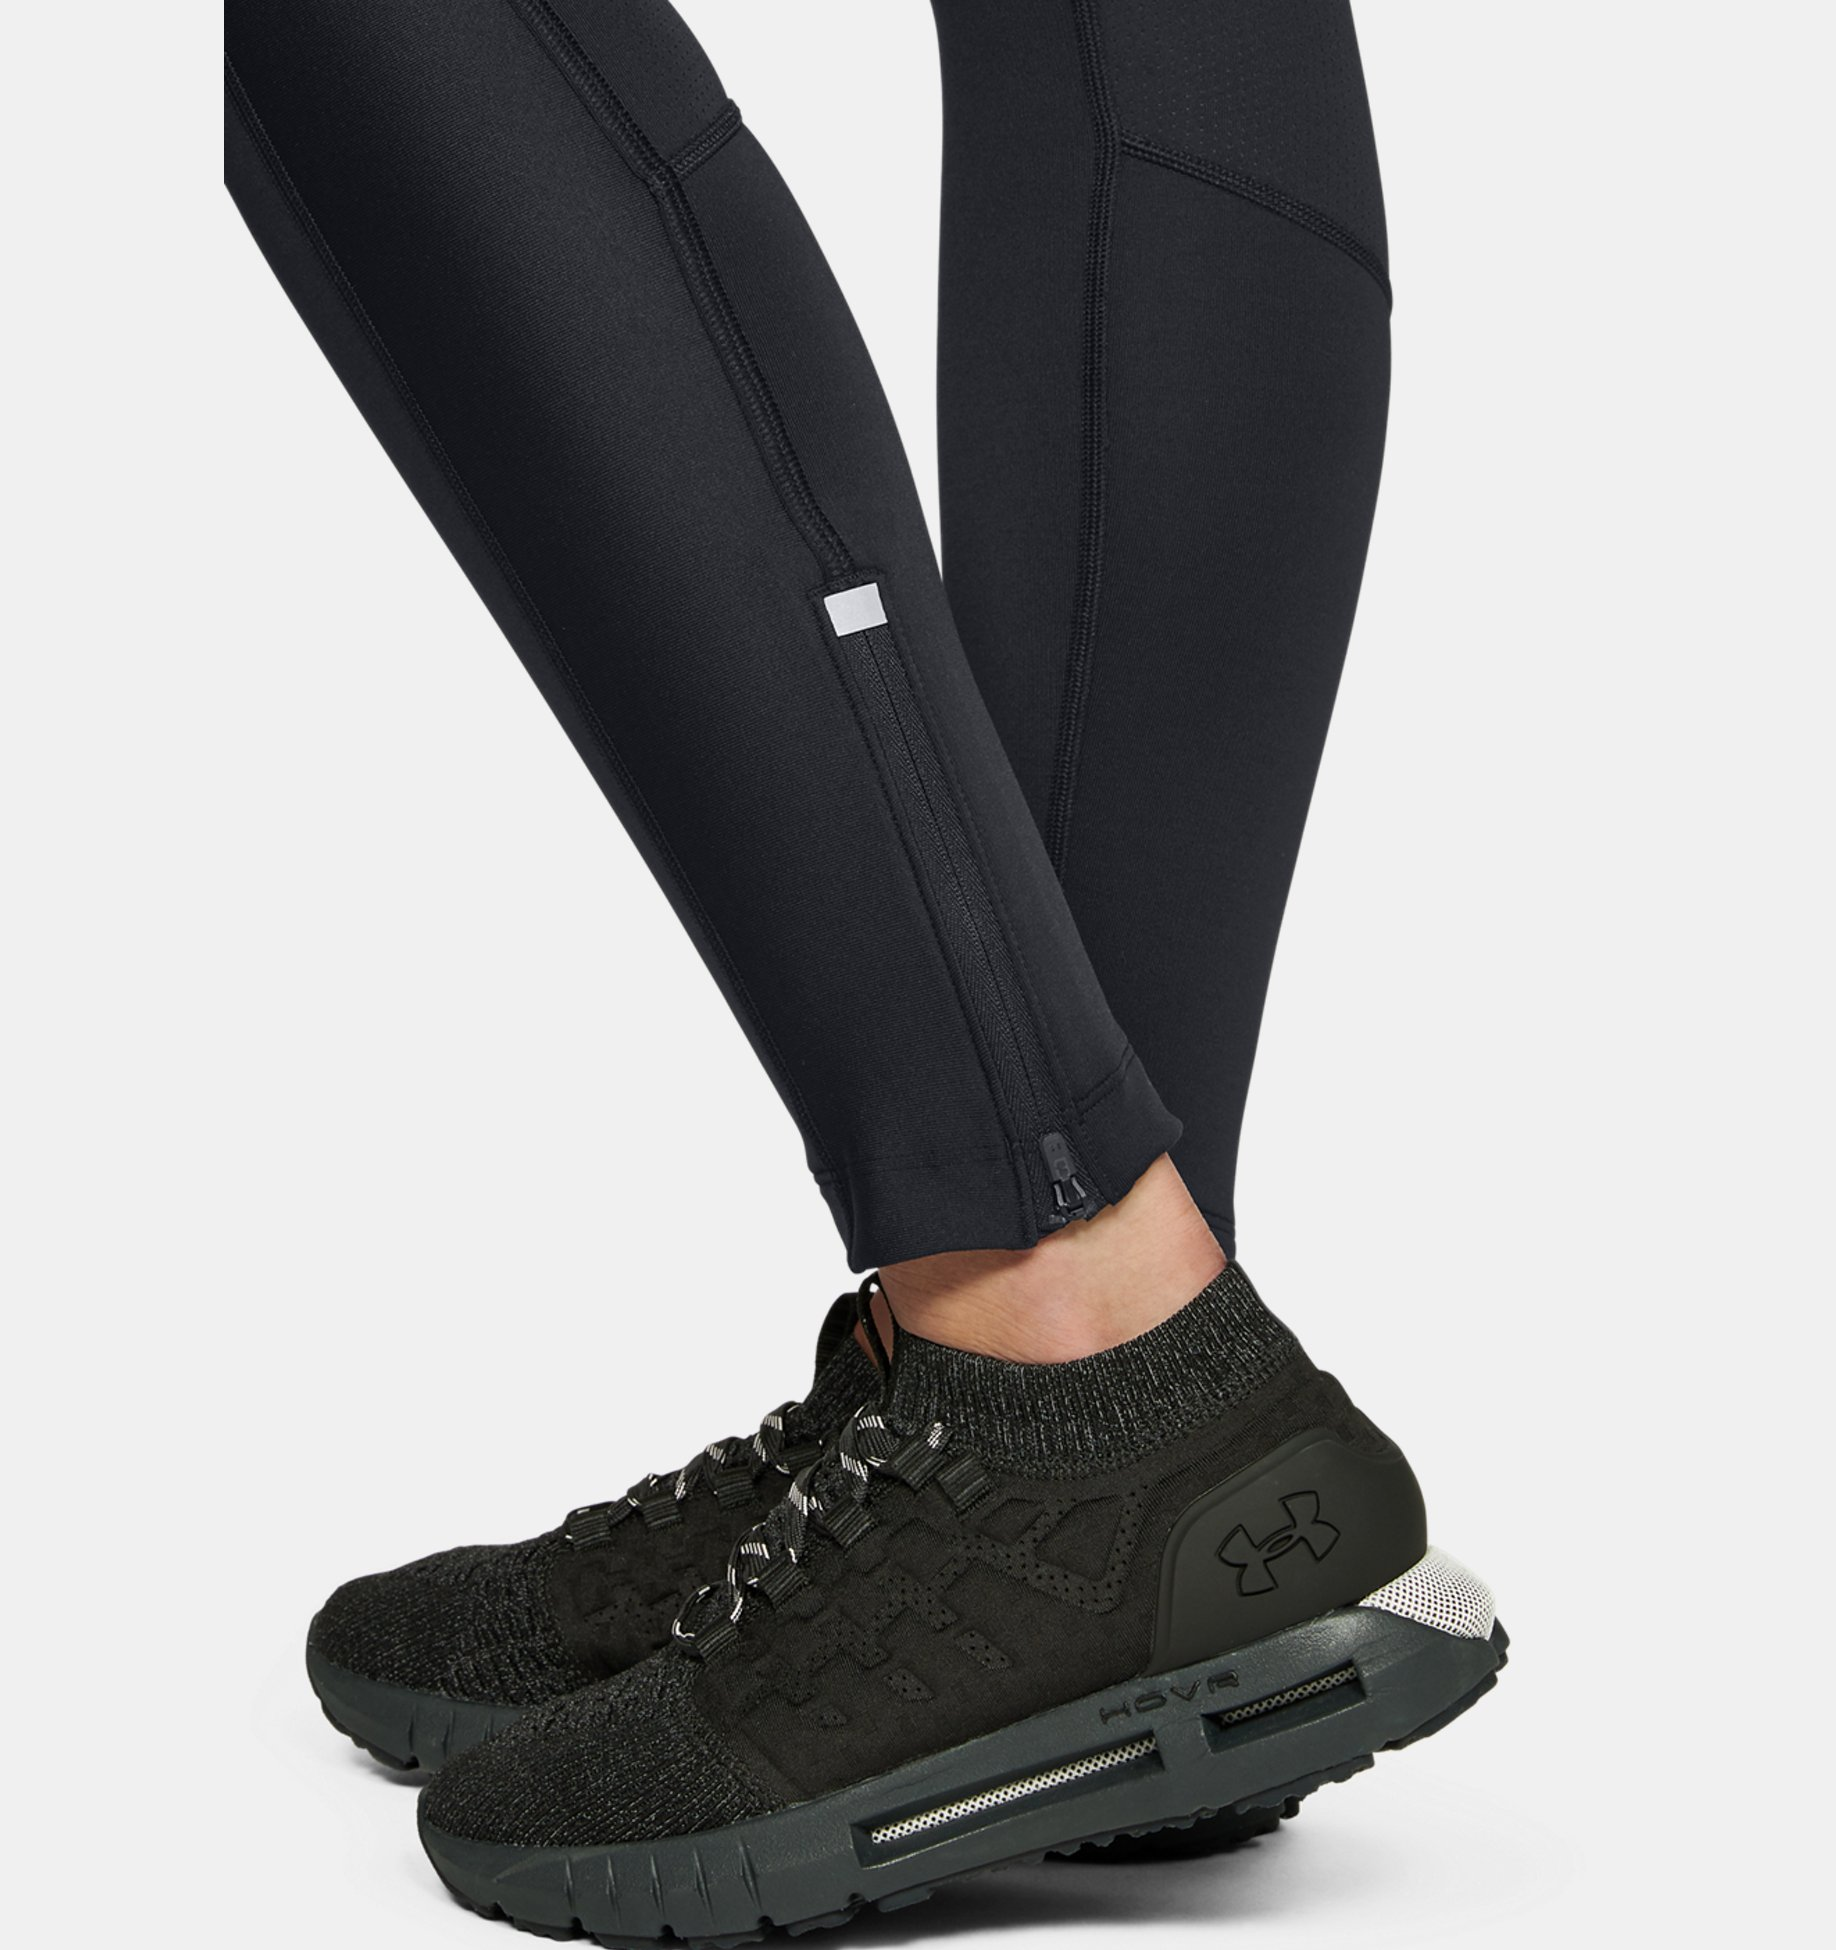 Legging Coldgear Run Storm Pour Femme Under Armour